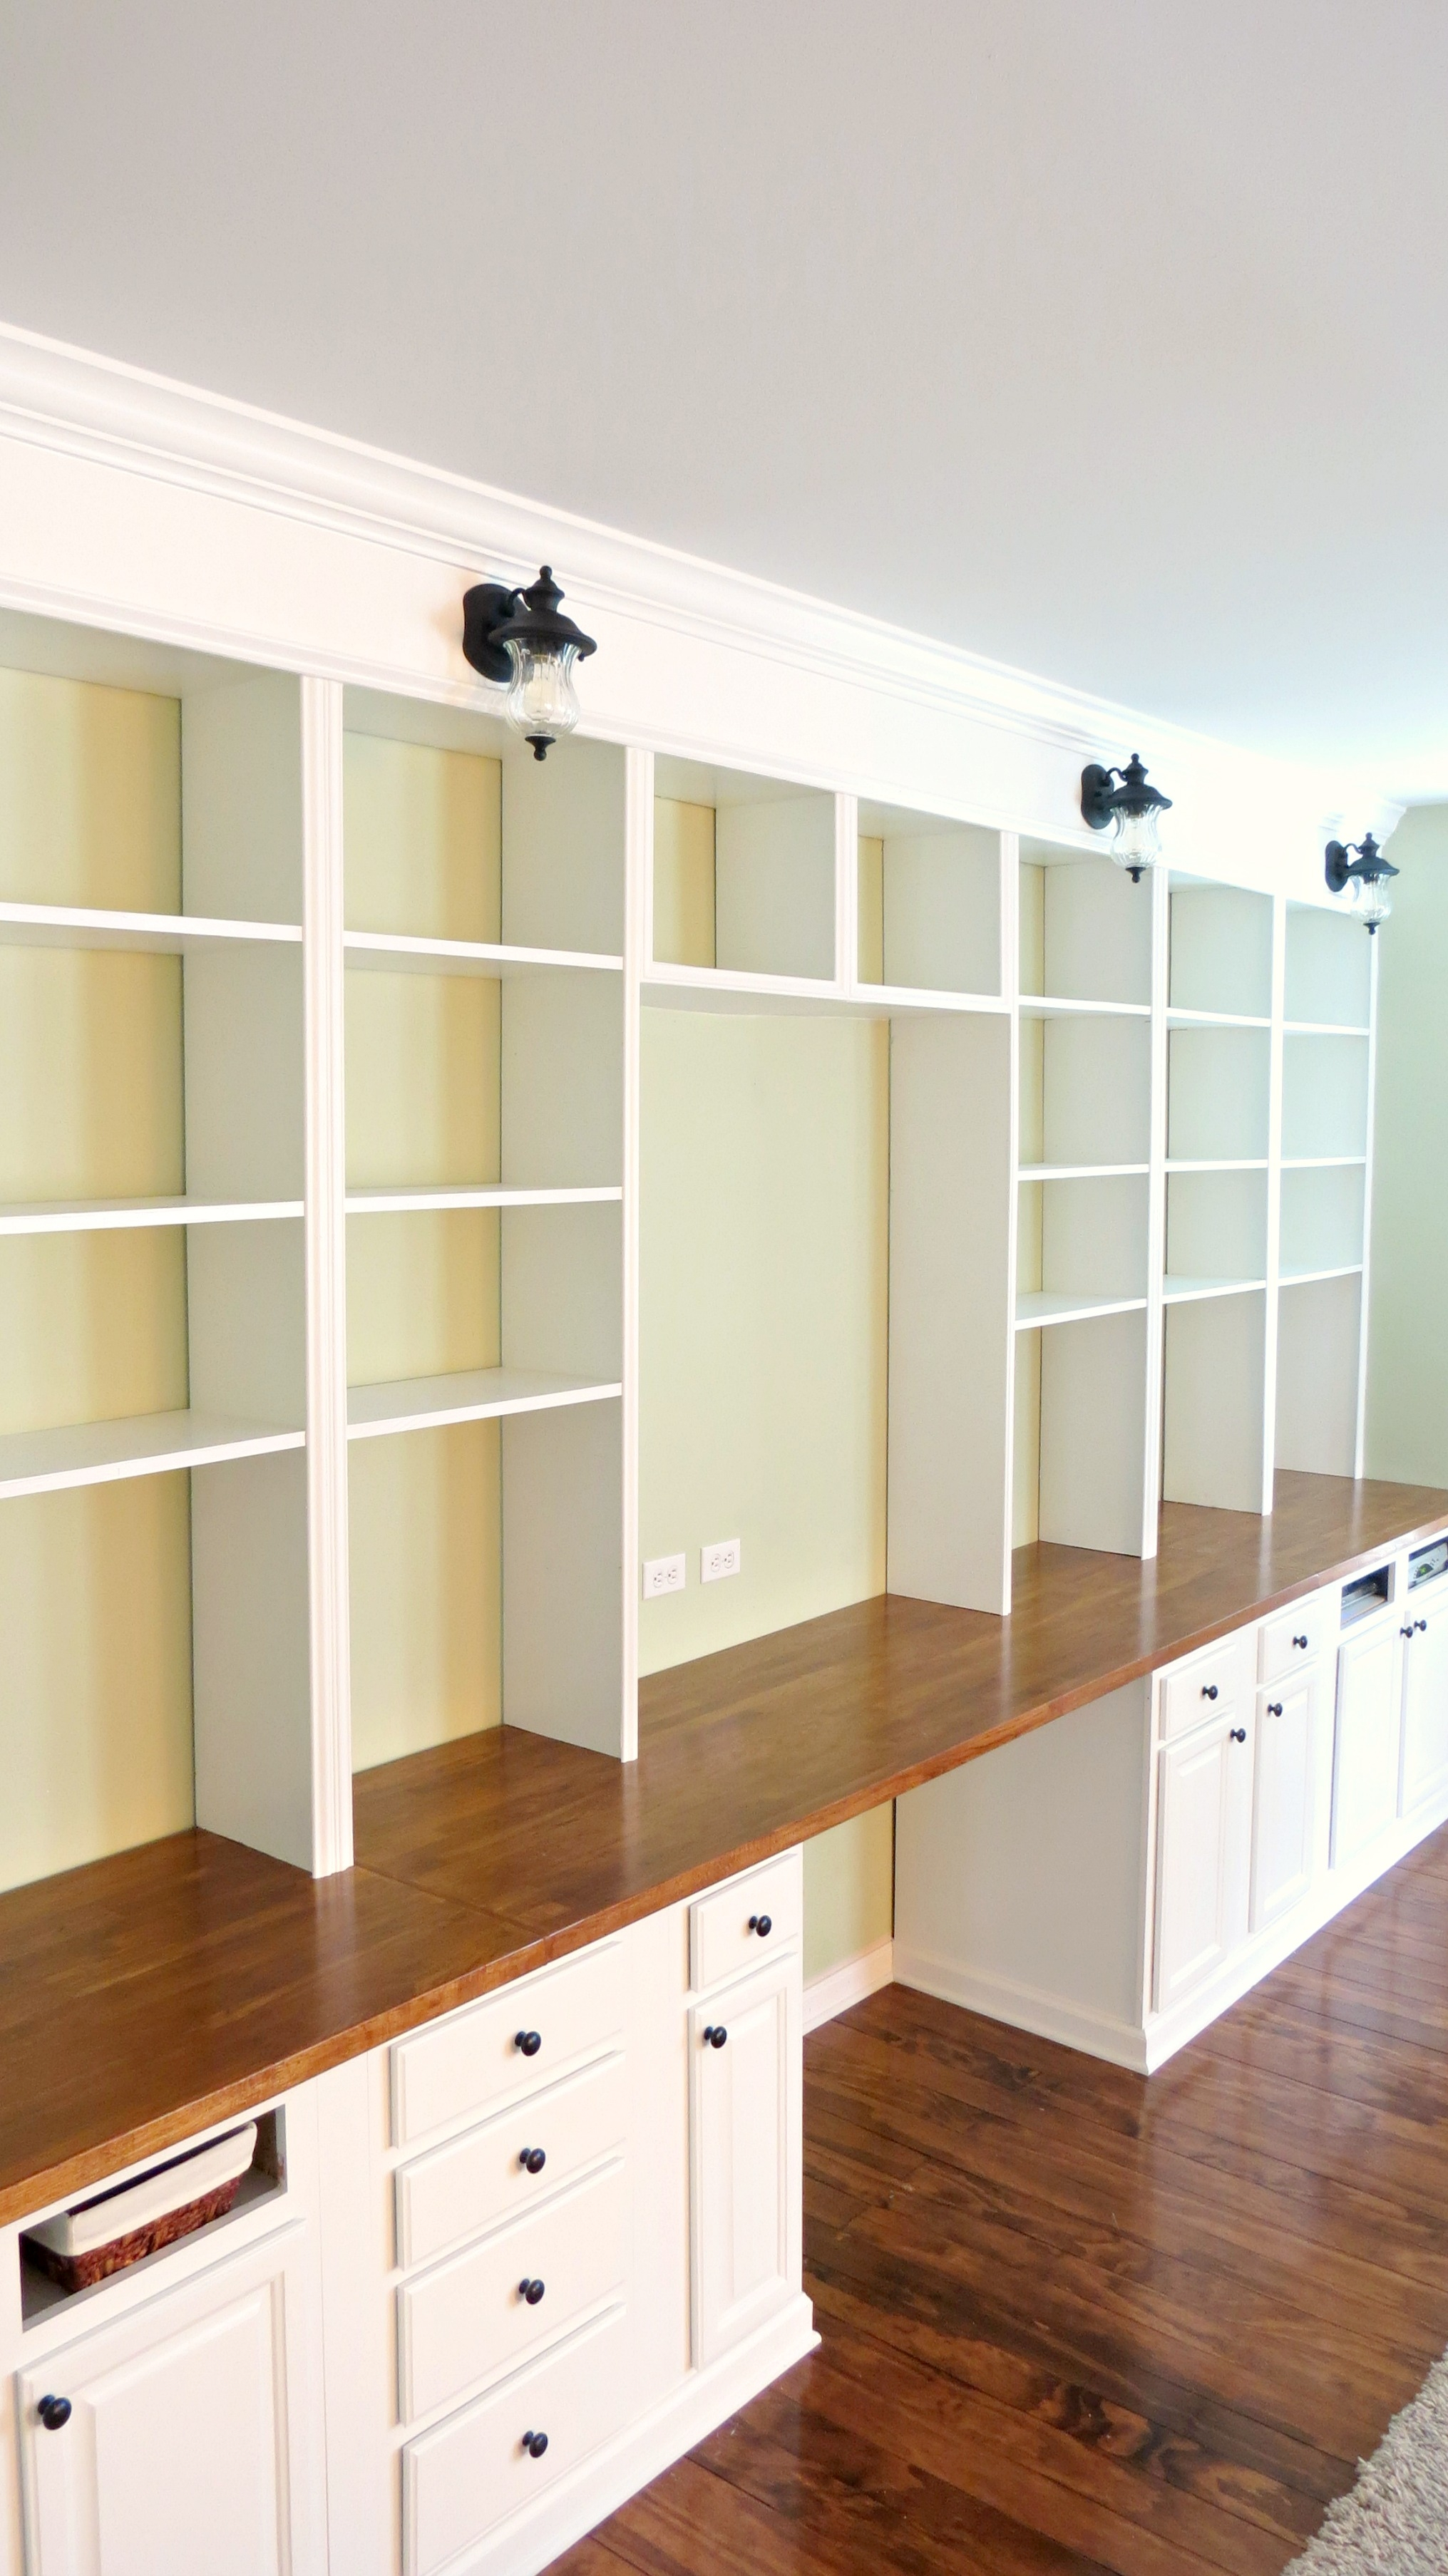 Remodelaholic Build A Wall To Wall Built In Desk And Bookcase With Built In Bookshelf Kits (View 14 of 15)